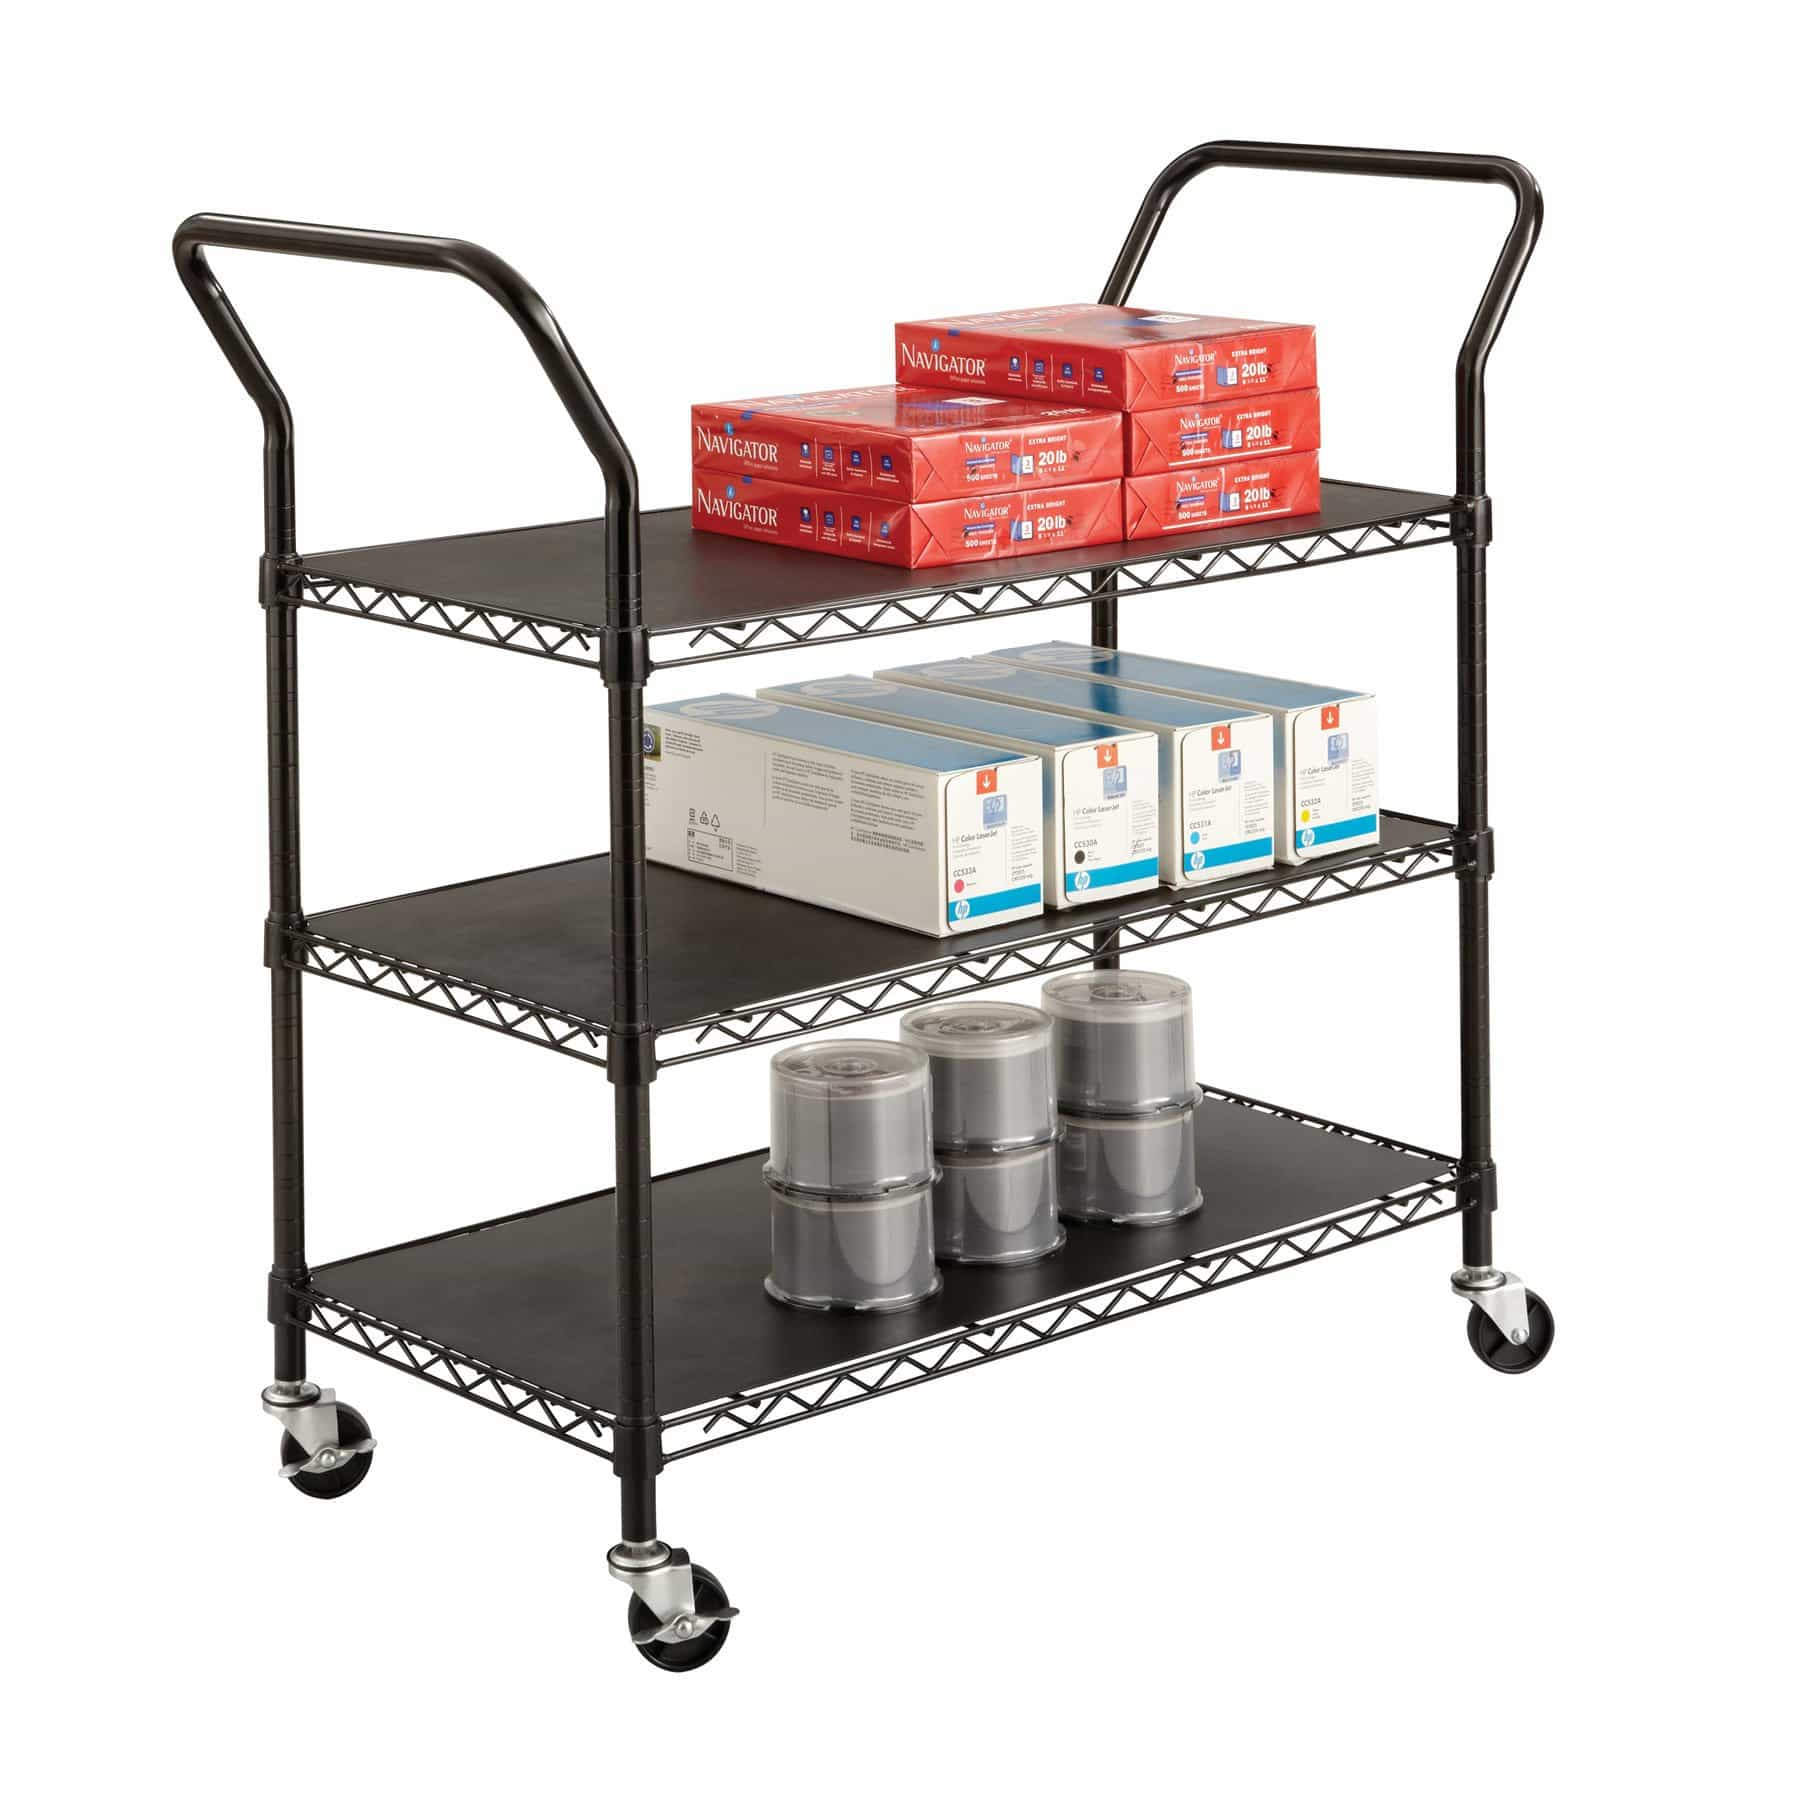 bedinhome - 5338BL Safco Black plastic shelf Wire Utility Cart three adjustable shelves - Safco - Utility/Book Carts